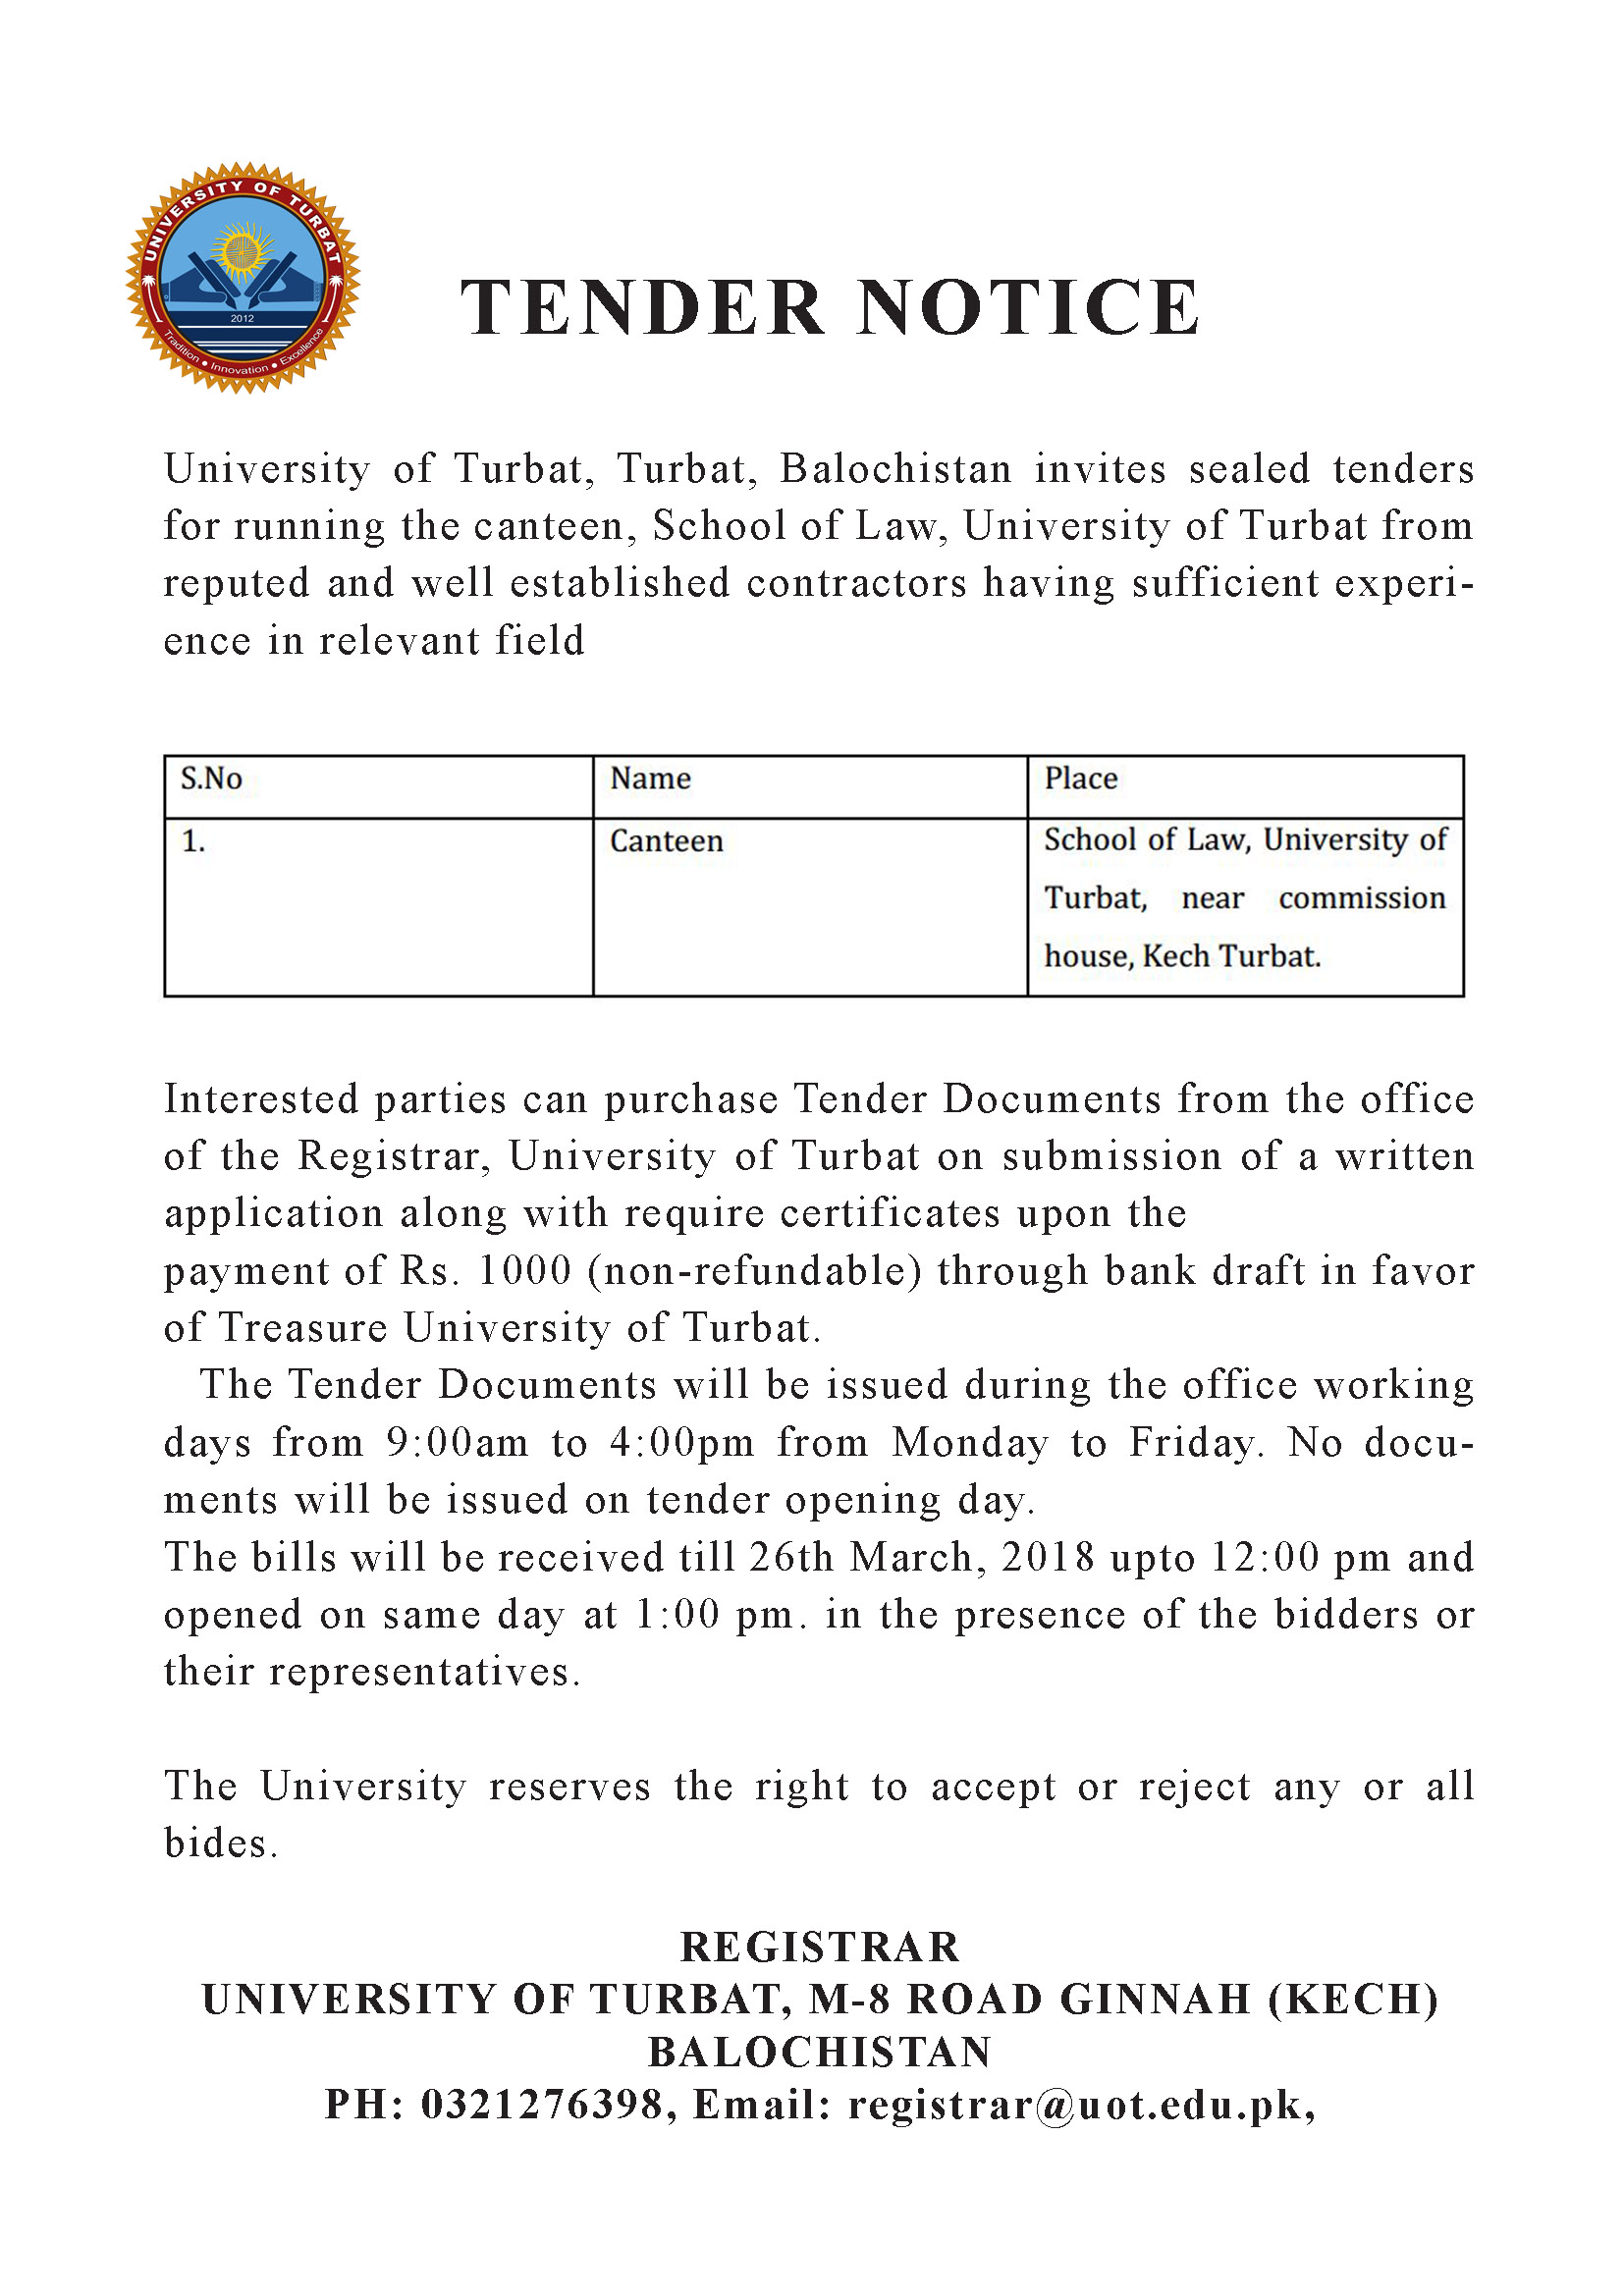 Tender Notice for Canteen (School of Law, UoT)